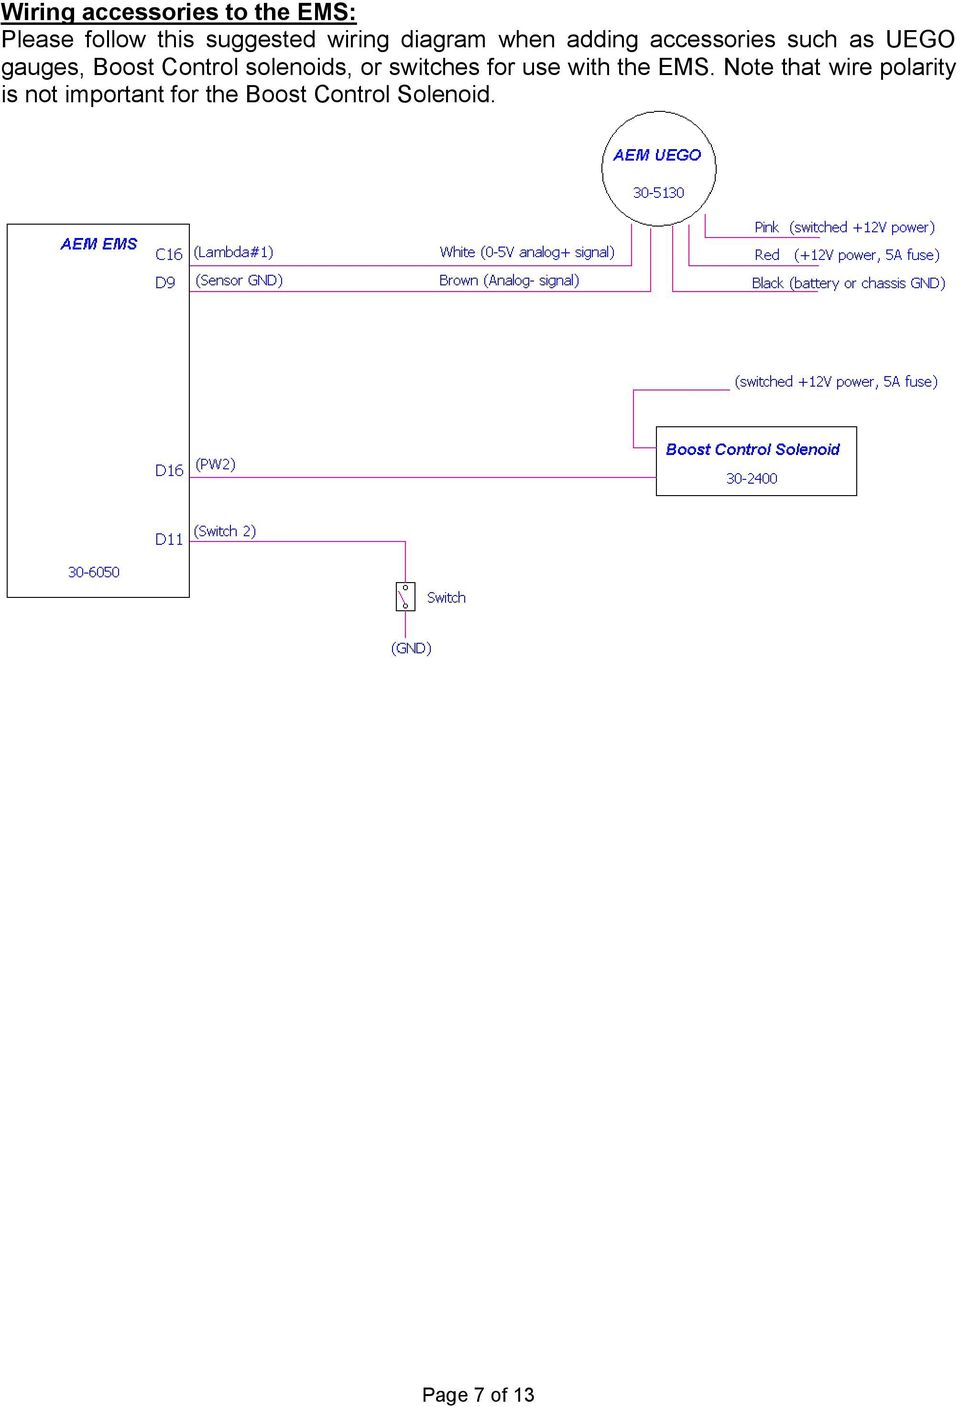 Installation Instructions For Ems P N Acura Integra 23cl Subwooferampwiringdiagram Updated Neon Wiring Diagram My B9 Control Solenoids Or Switches Use With The 8 Connection